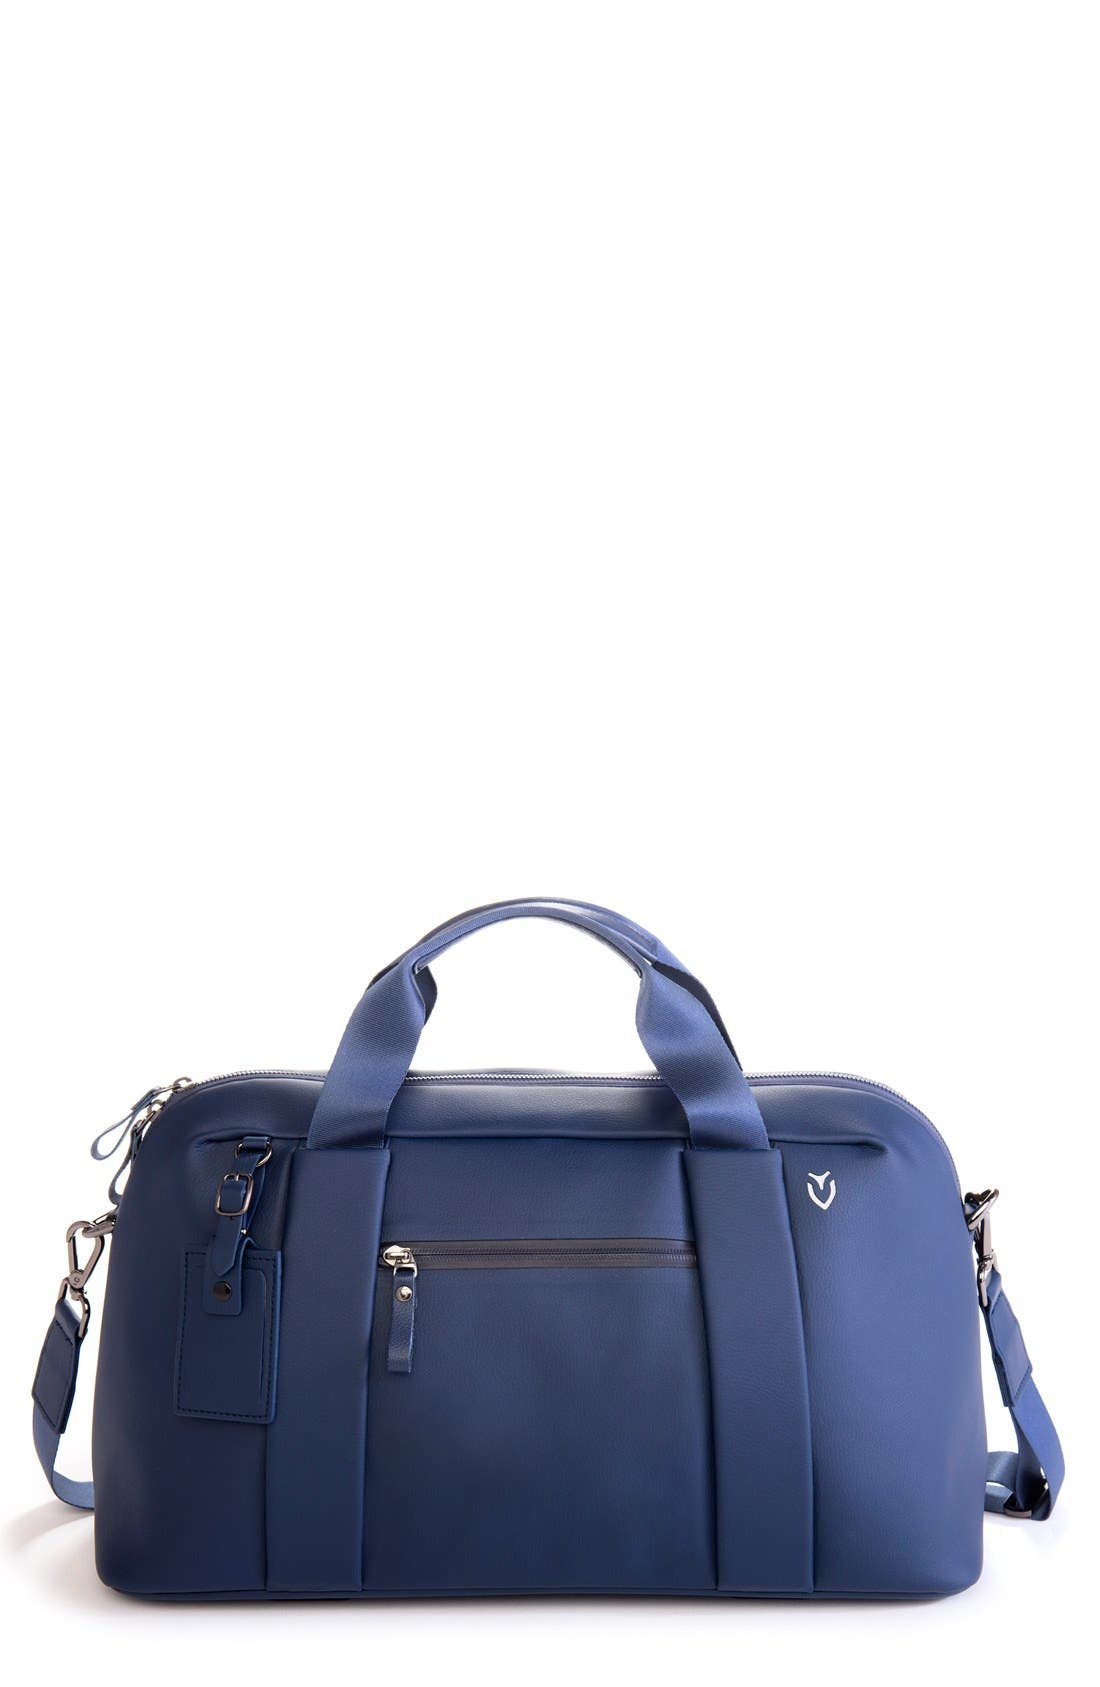 VESSEL Signature Medium Duffel Bag